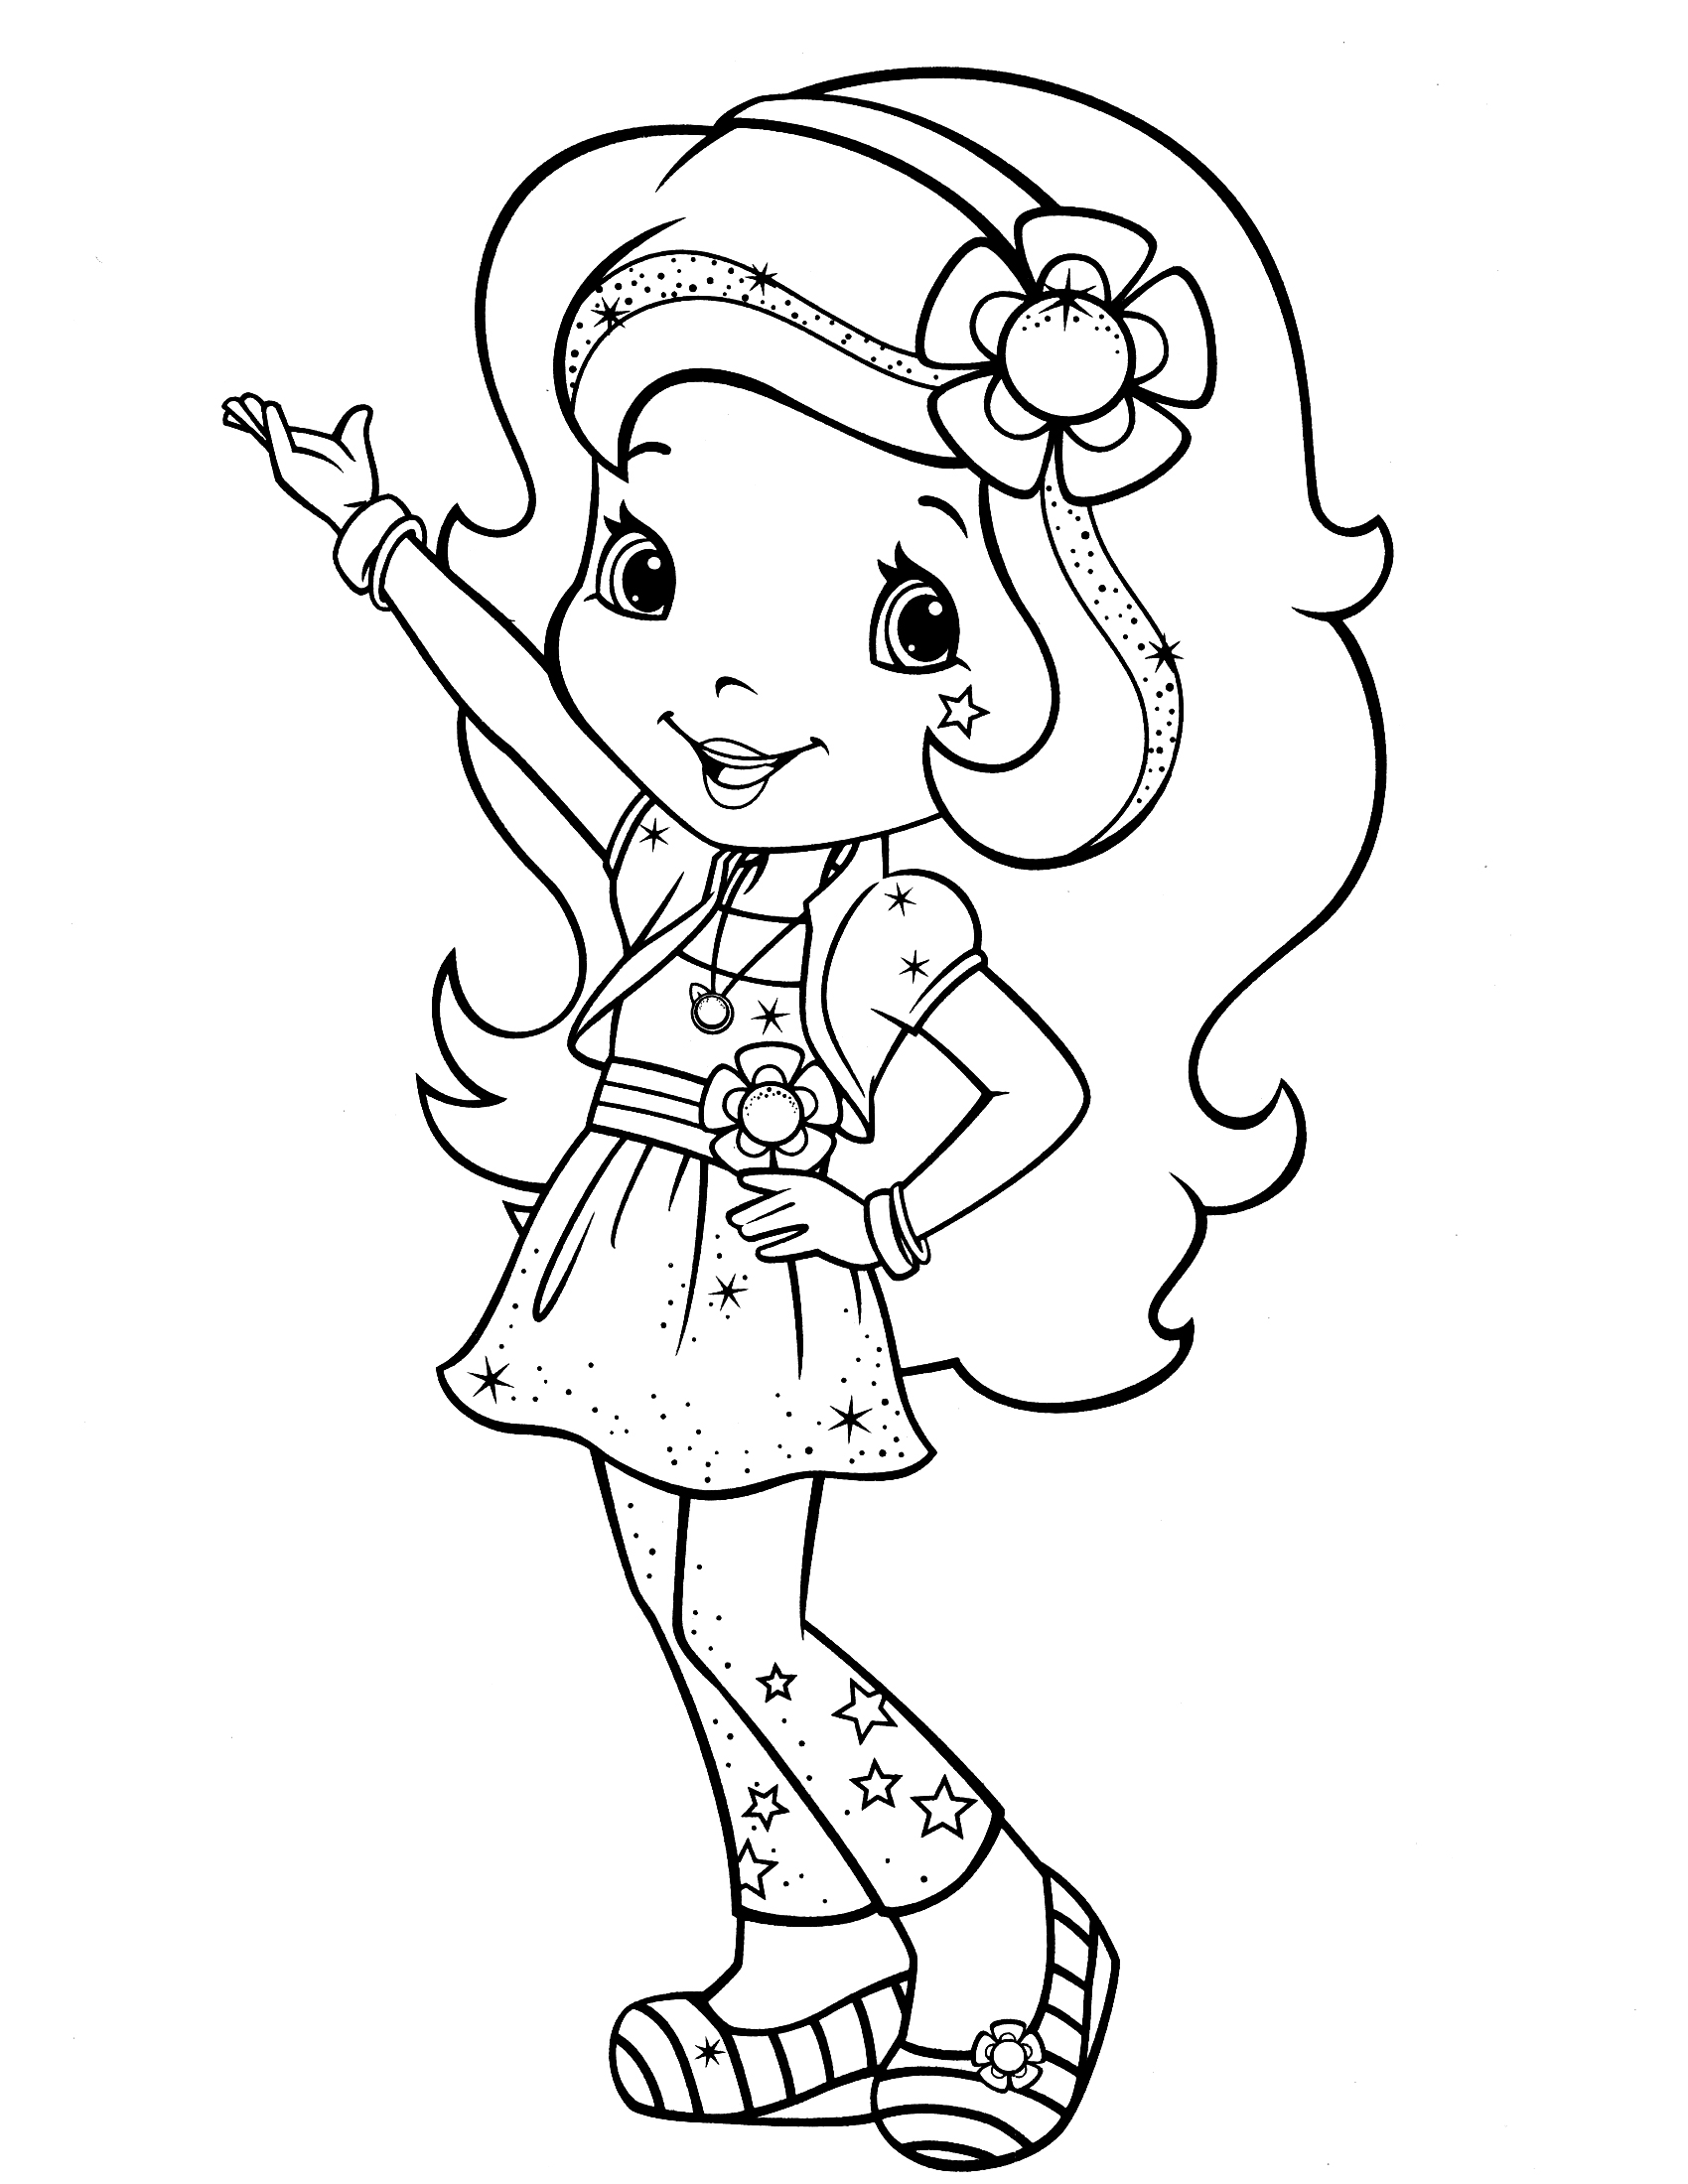 strawberry shortcake drawing pages strawberry shortcake coloring pages line drawing free drawing strawberry shortcake pages